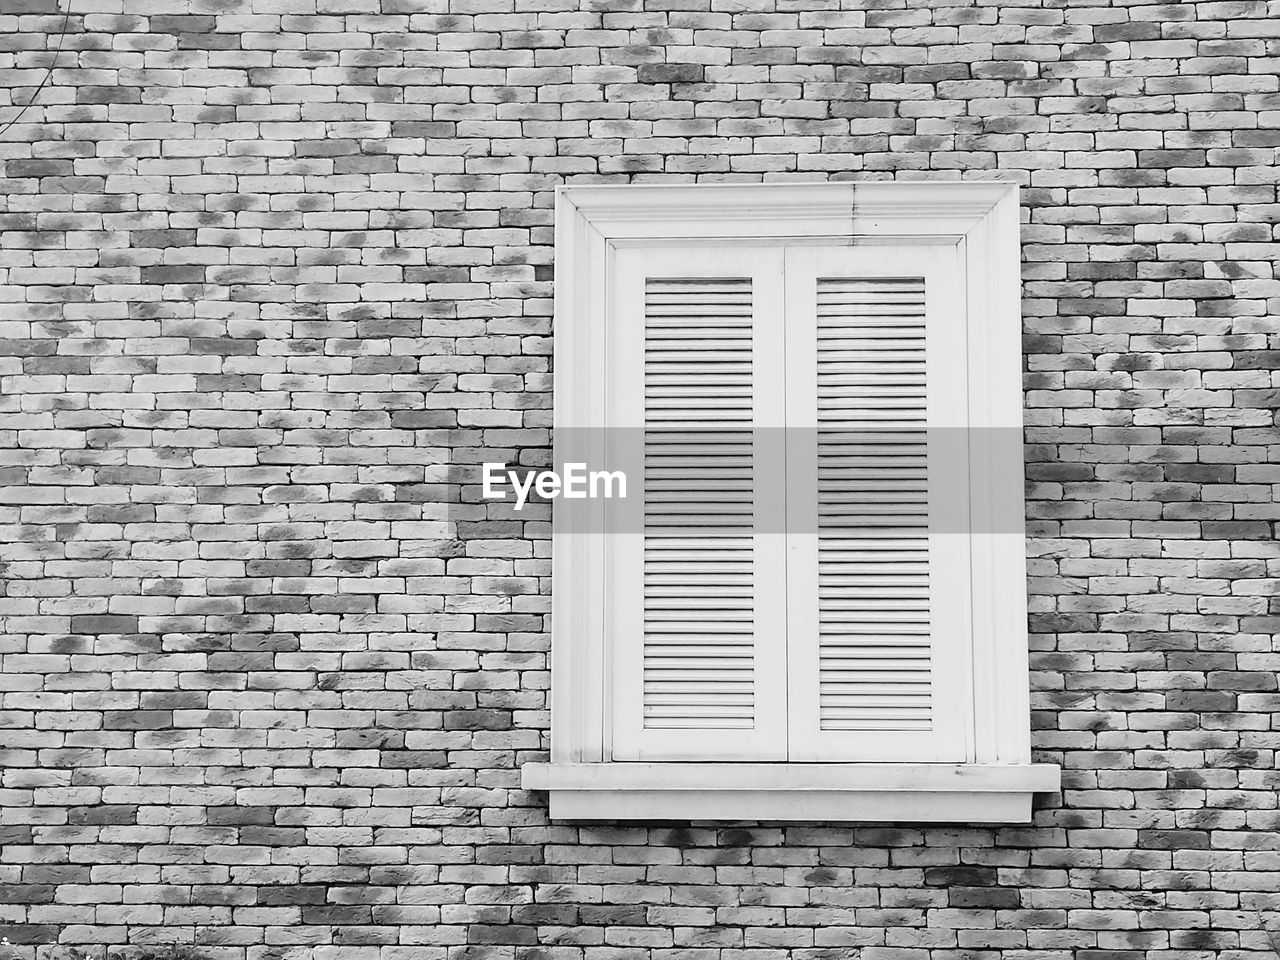 built structure, architecture, window, brick wall, brick, building exterior, wall, wall - building feature, no people, day, building, pattern, closed, outdoors, house, white color, shape, security, geometric shape, full frame, window frame, exhaust fan